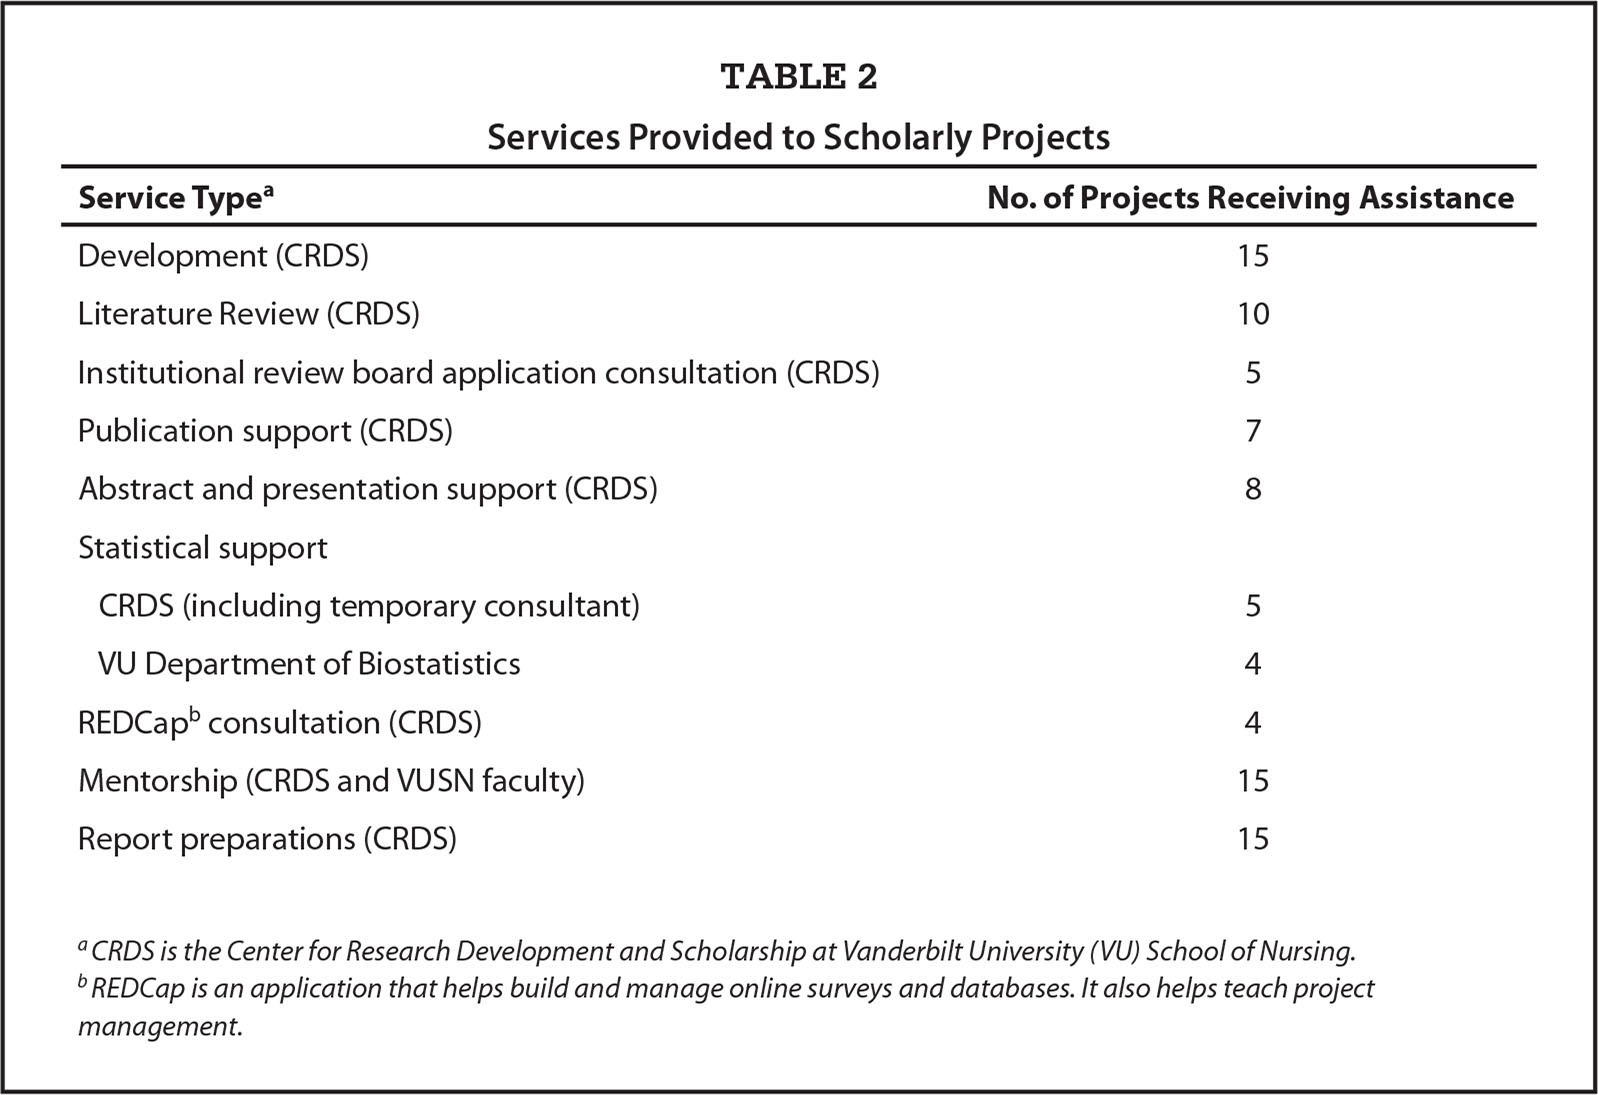 Services Provided to Scholarly Projects